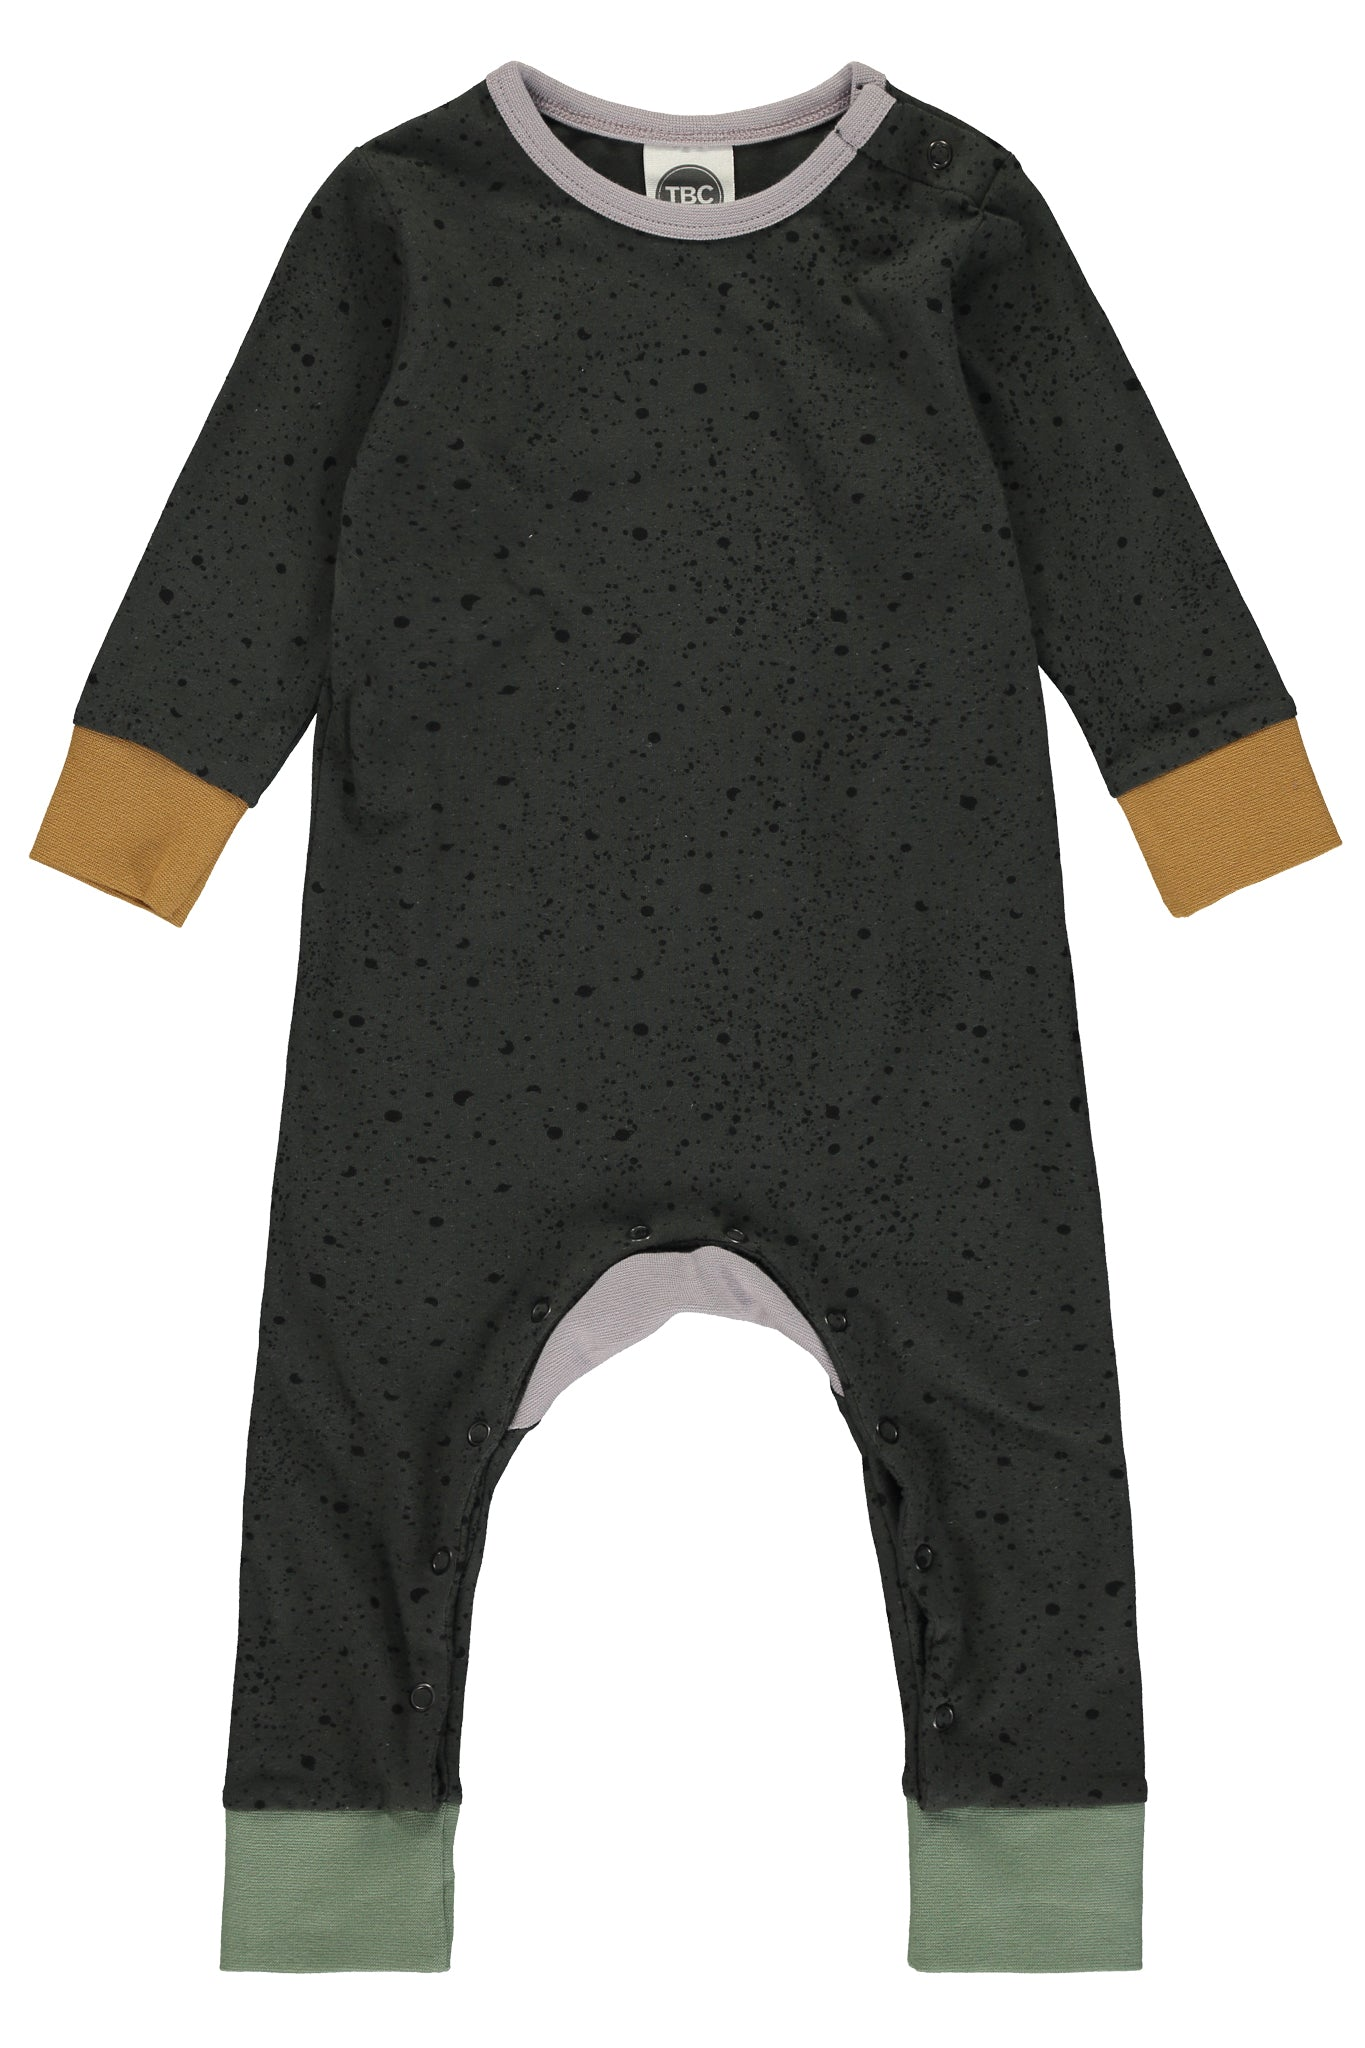 MONTY SLEEPSUIT - PAINT SPLAT PEAT